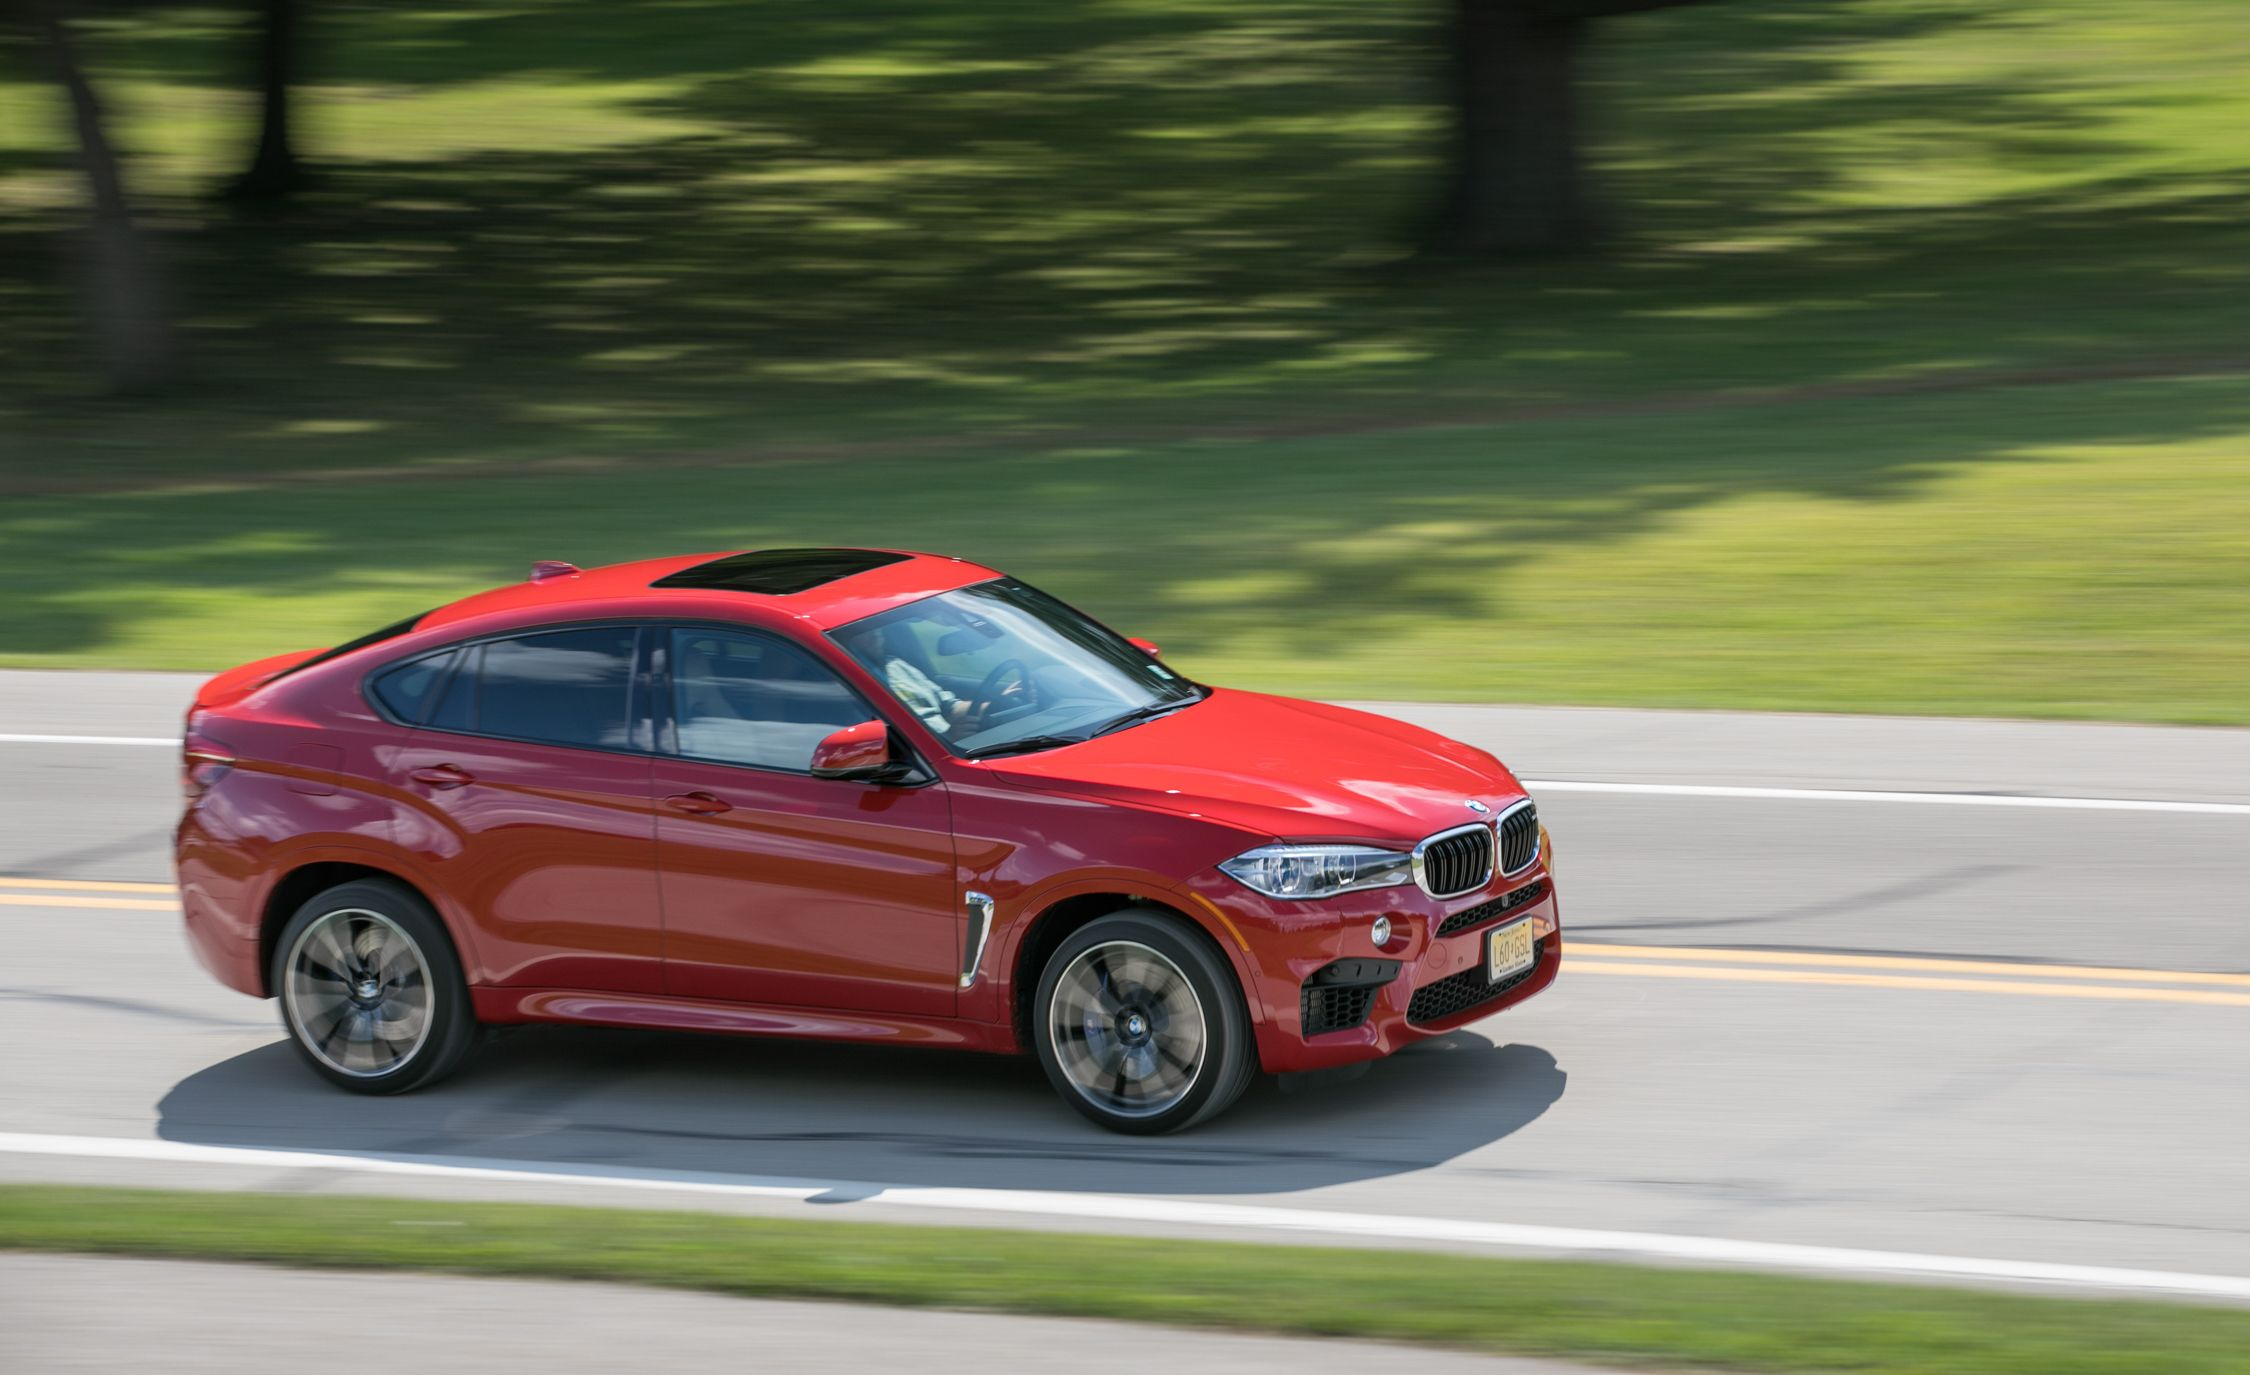 2019 Bmw X6 M Reviews Price Photos And Specs Car Driver